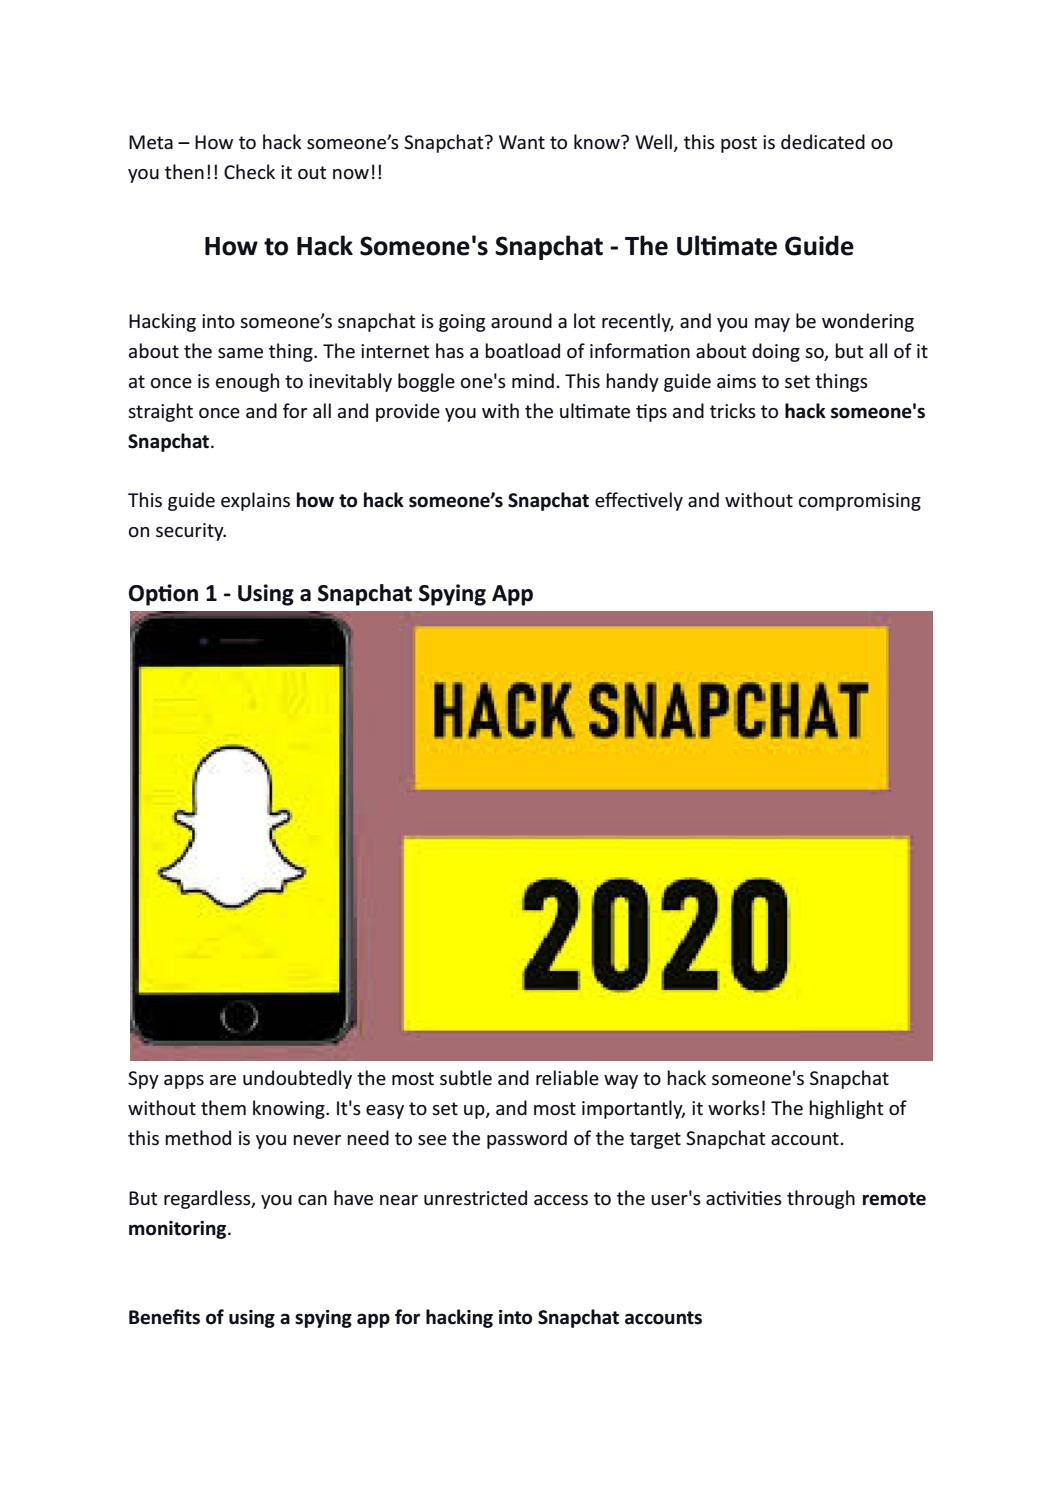 How To Hack Someones Snapchat By Andrea Lake Issuu